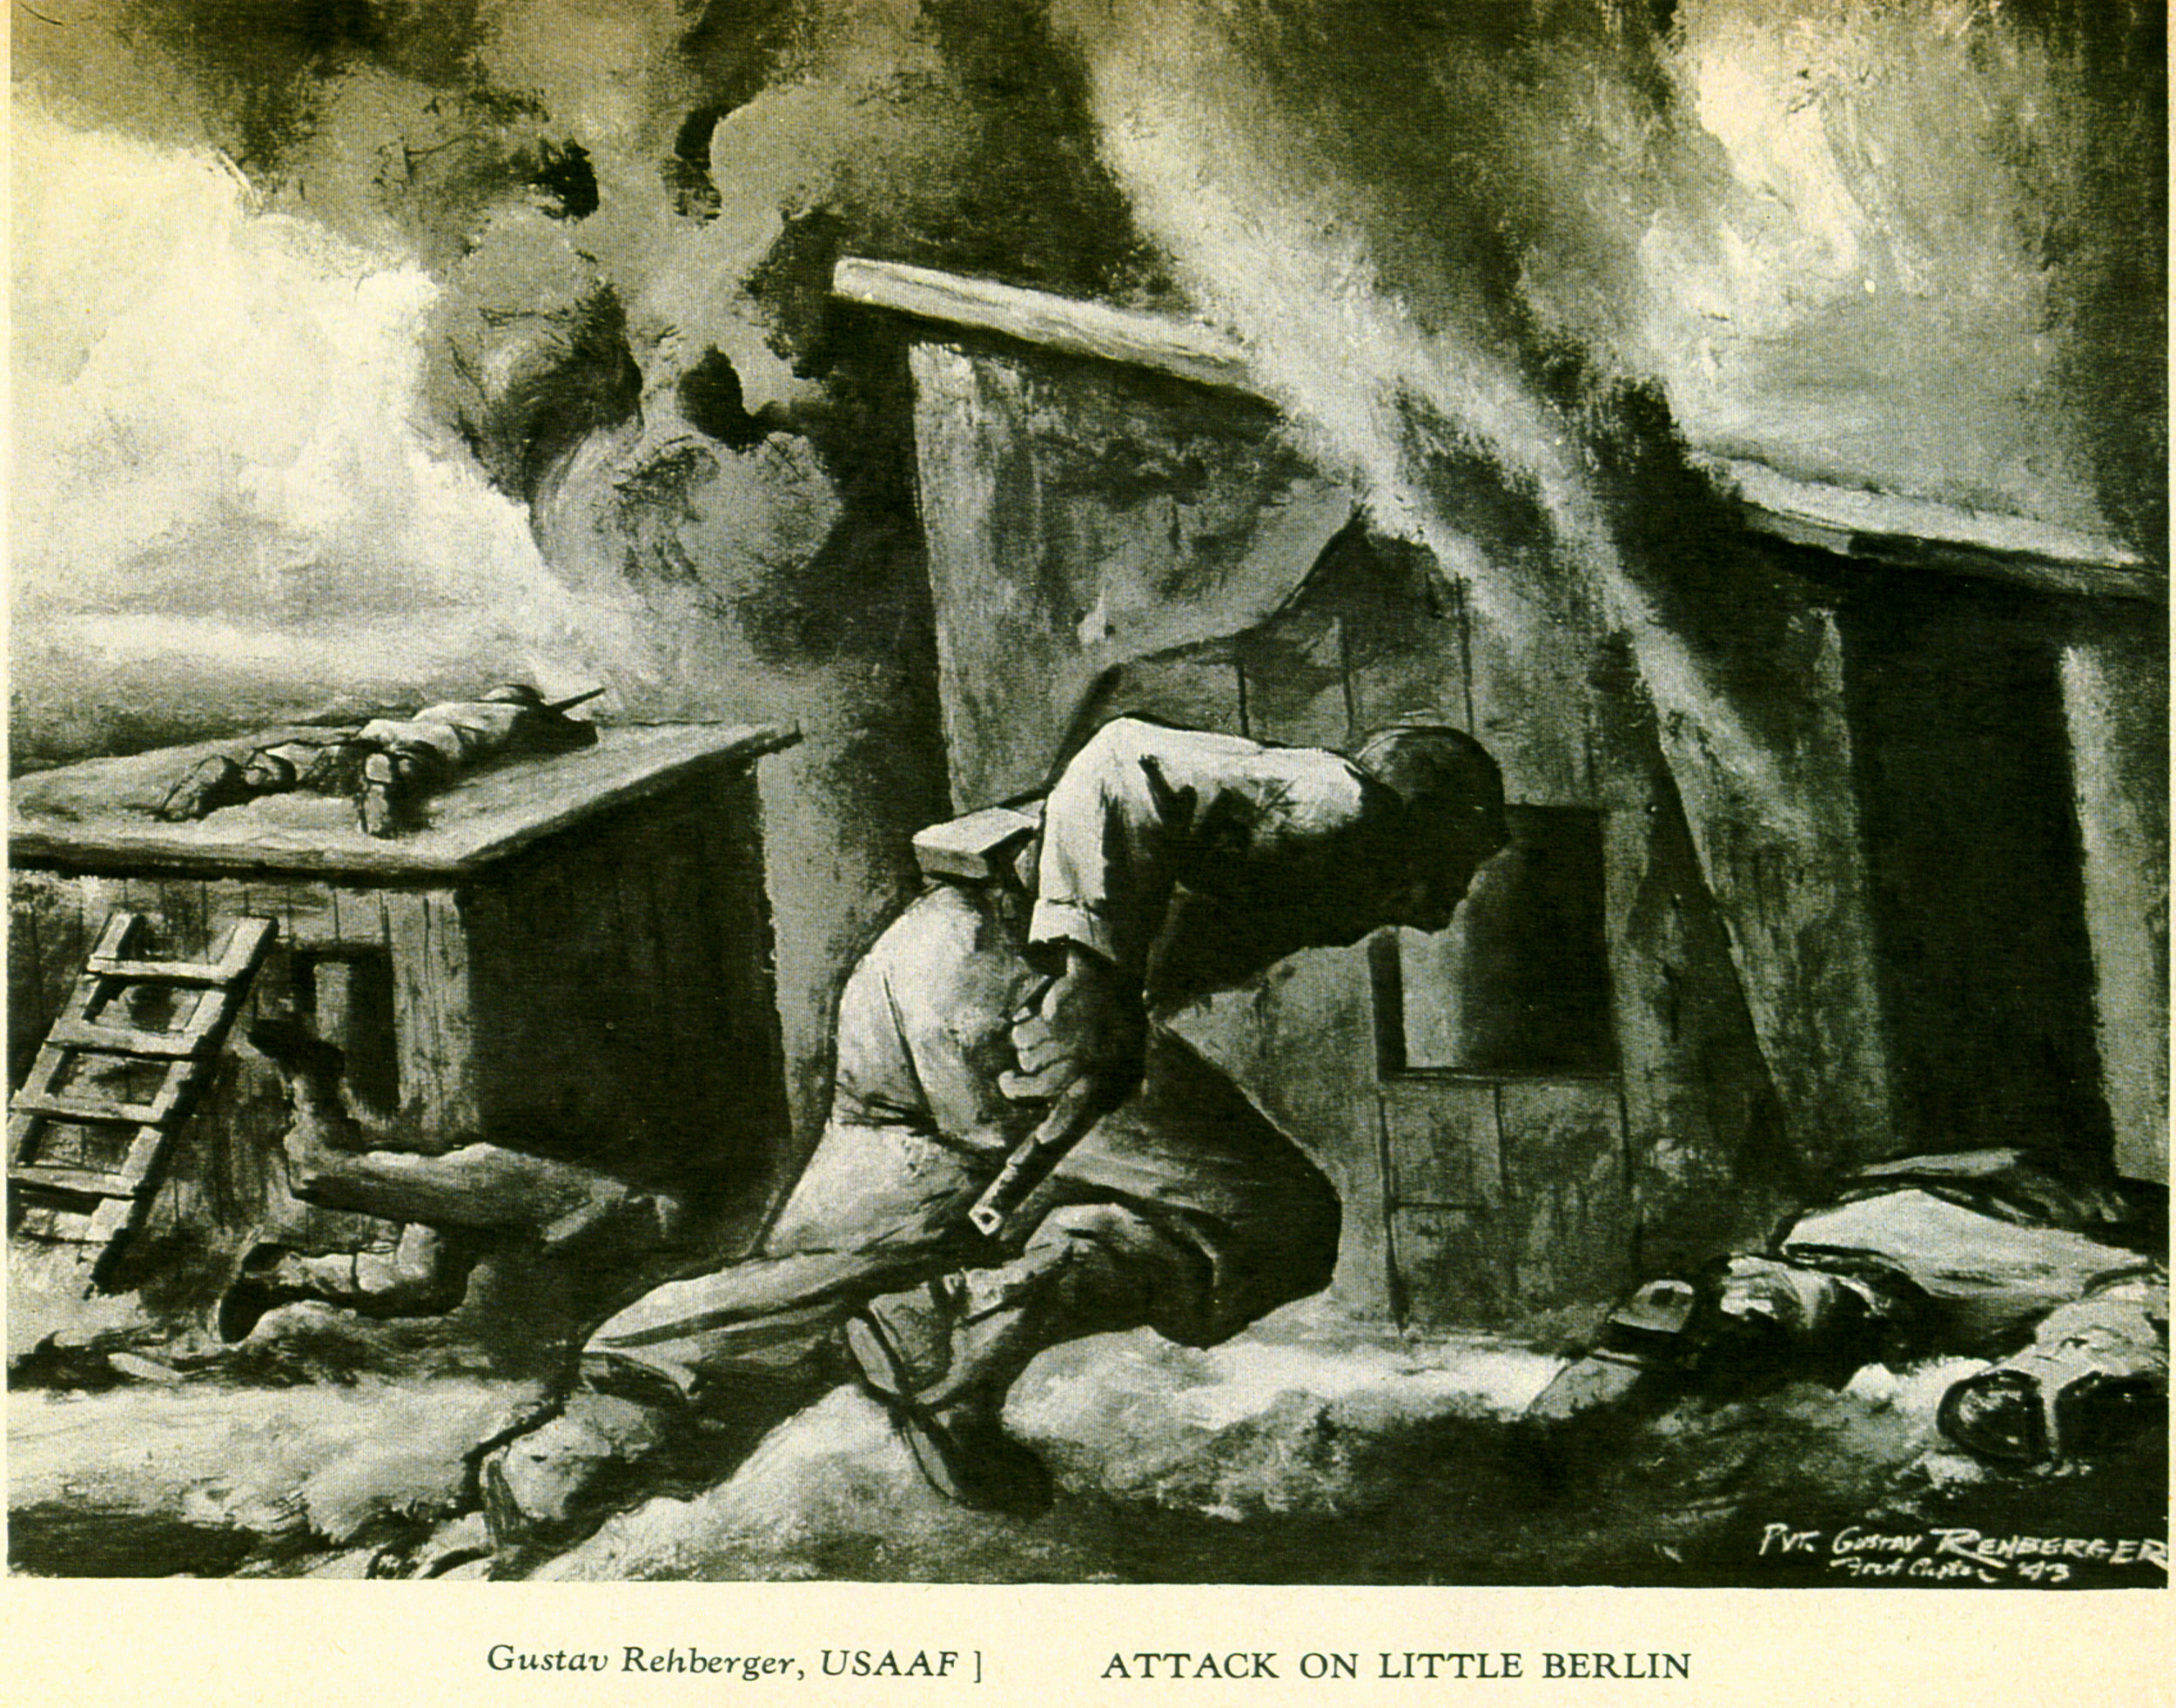 """Attack on Little Berlin"" - Army Illustrators of Fort Custer, Michigan 1944 - Art in the Armed Forces - Pictured by Men in Action, Edited by Aimee Crane"